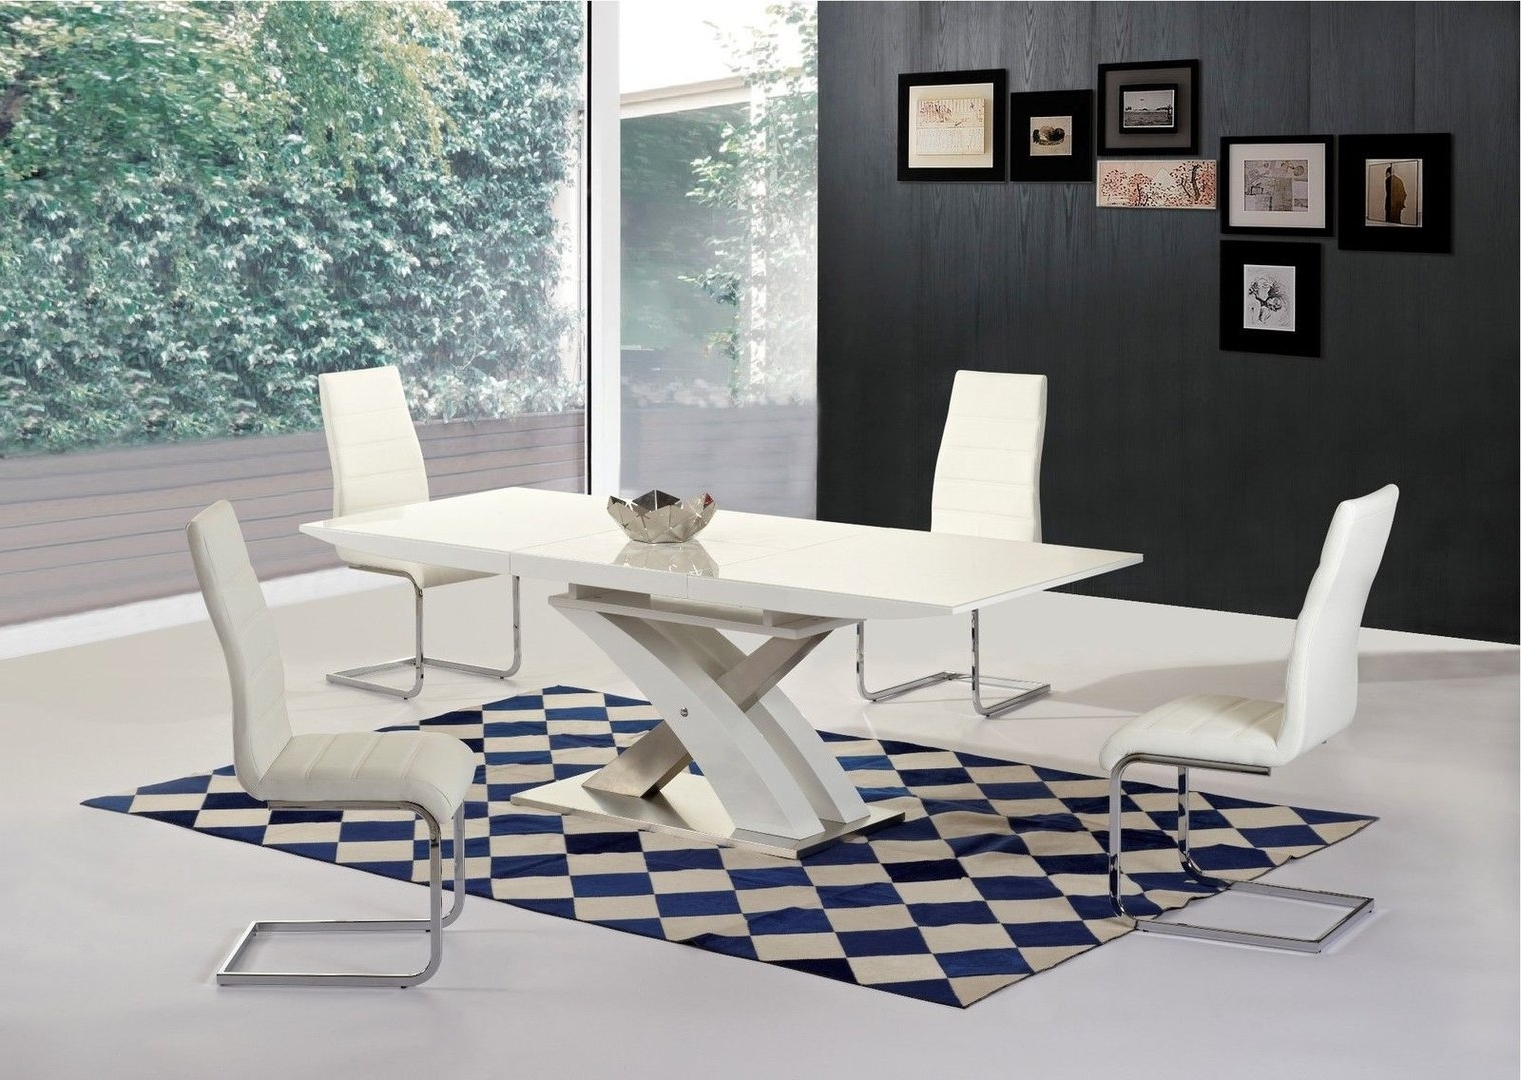 White High Gloss / Glass Extending Dining Table & 6 Chairs Pertaining To Preferred Extending Dining Tables With 6 Chairs (View 25 of 25)